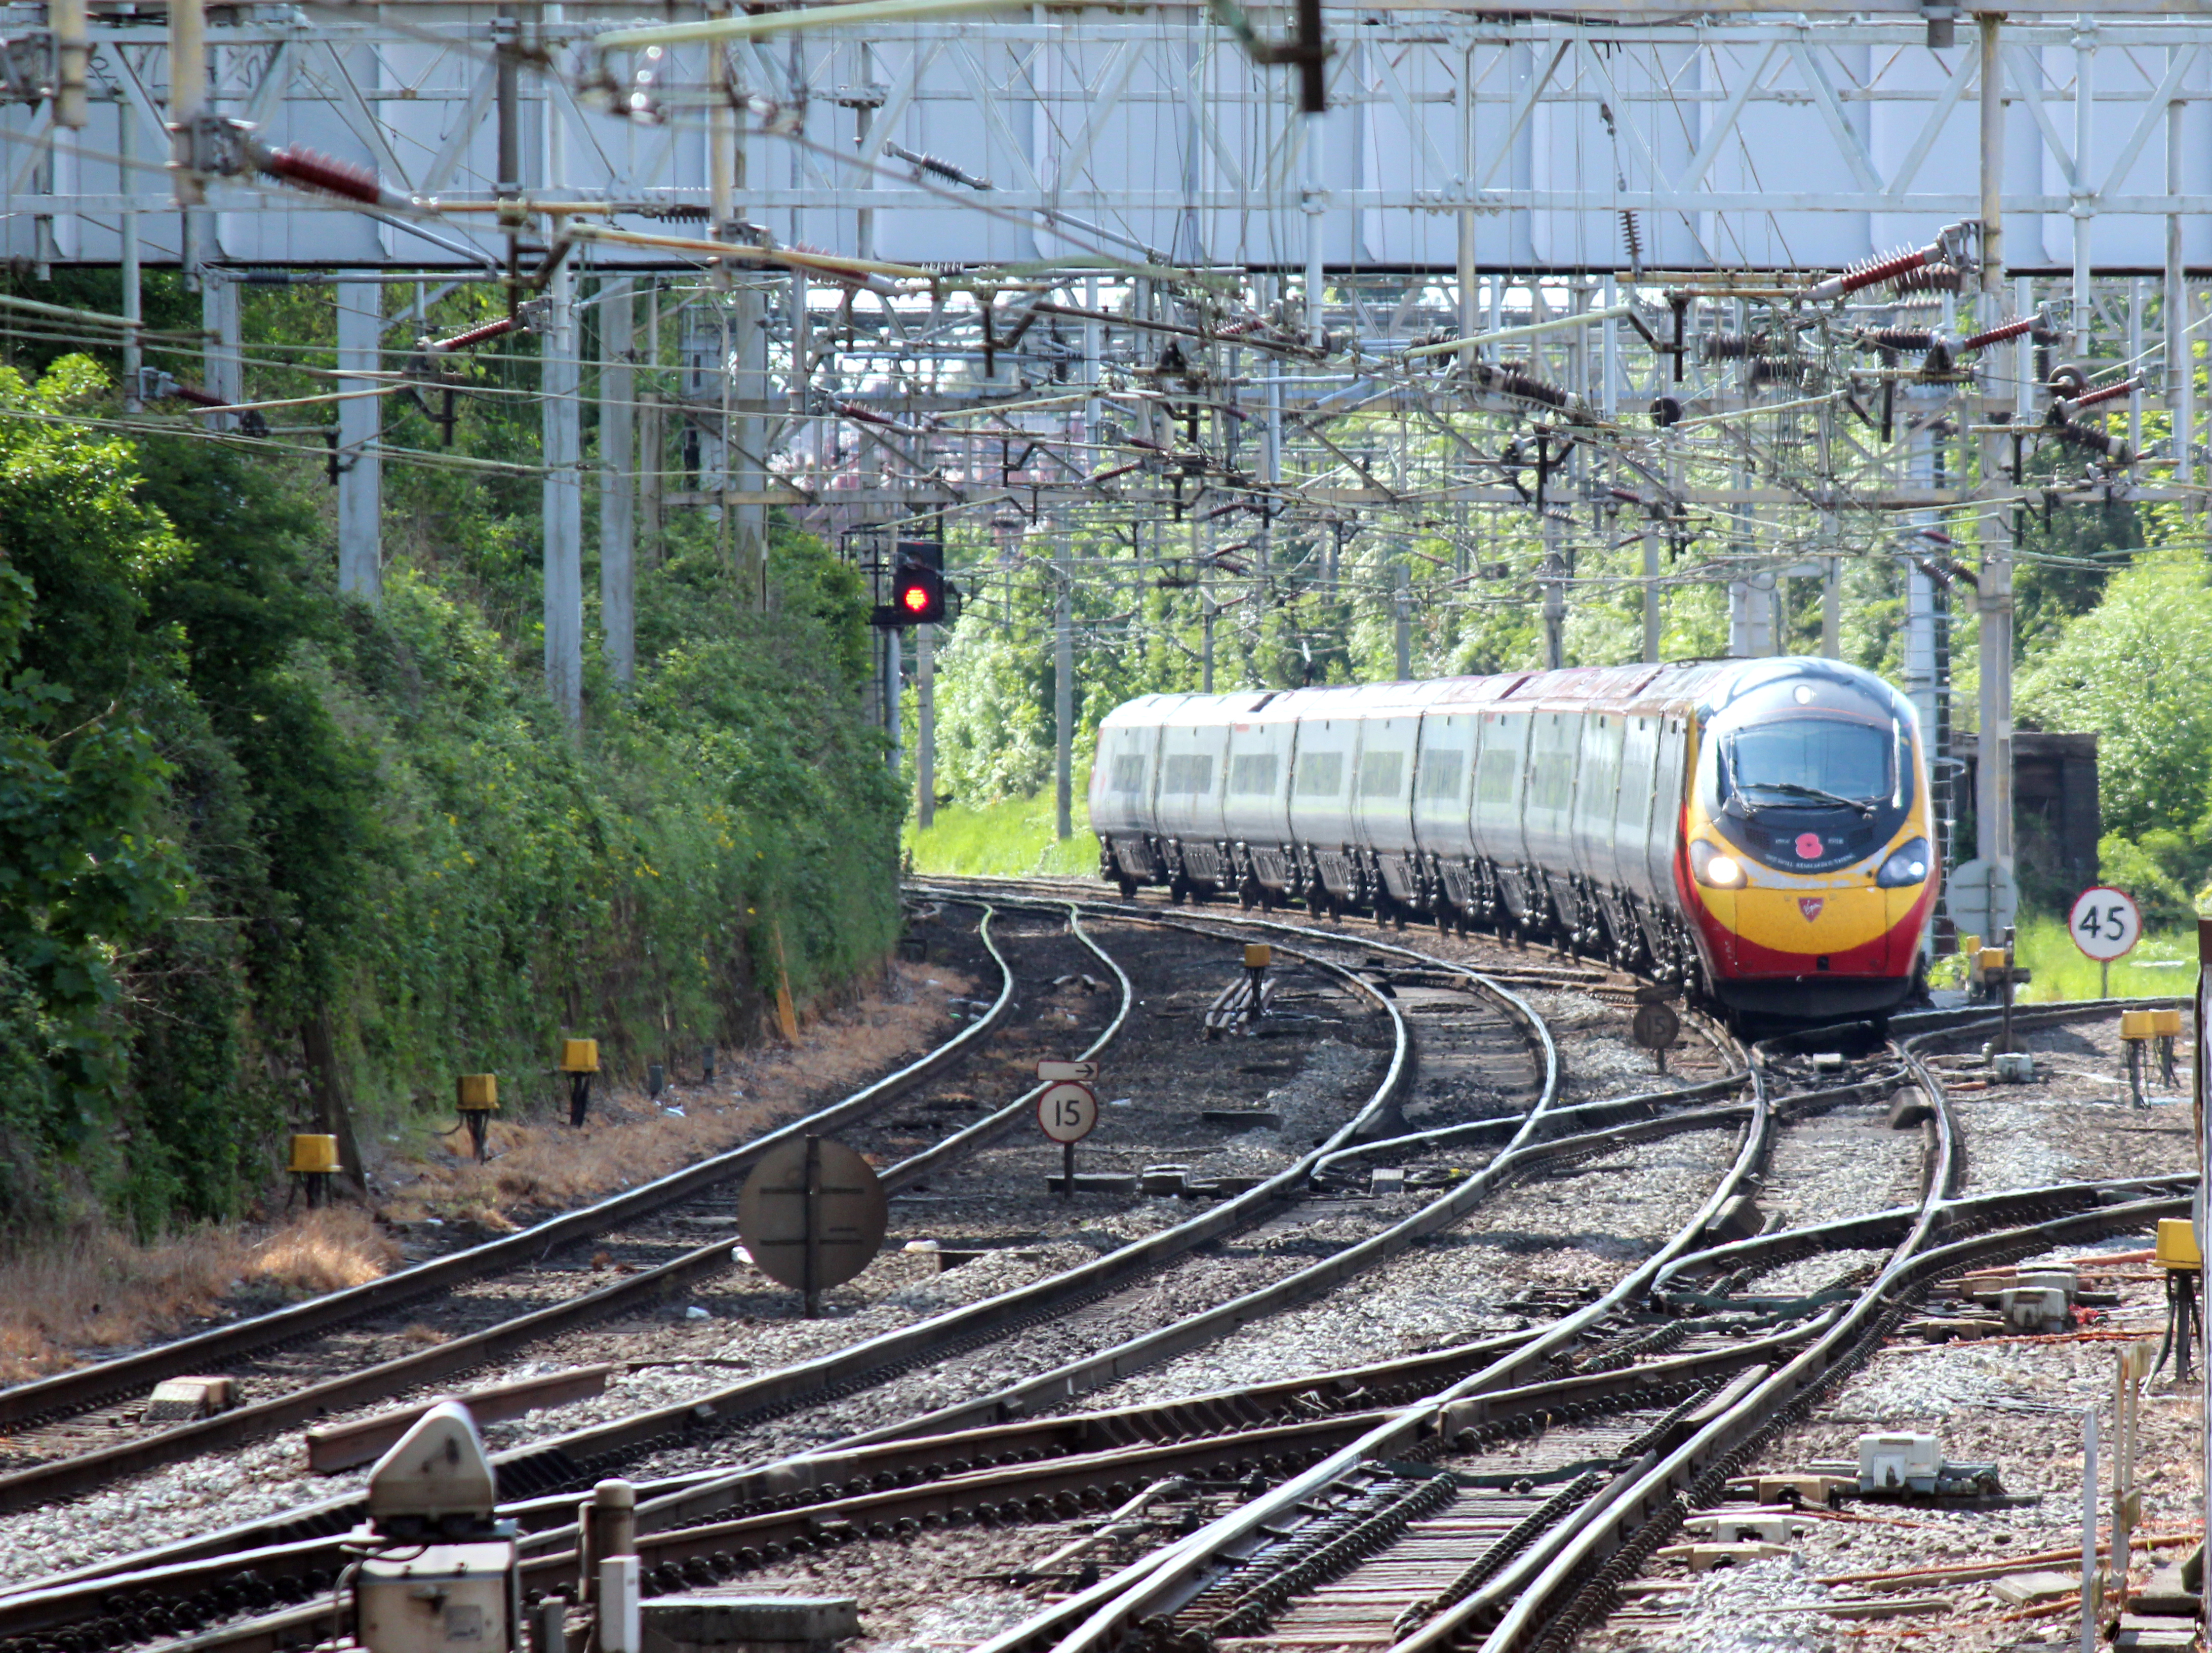 Virgin Pendalino approaching Coventry Station